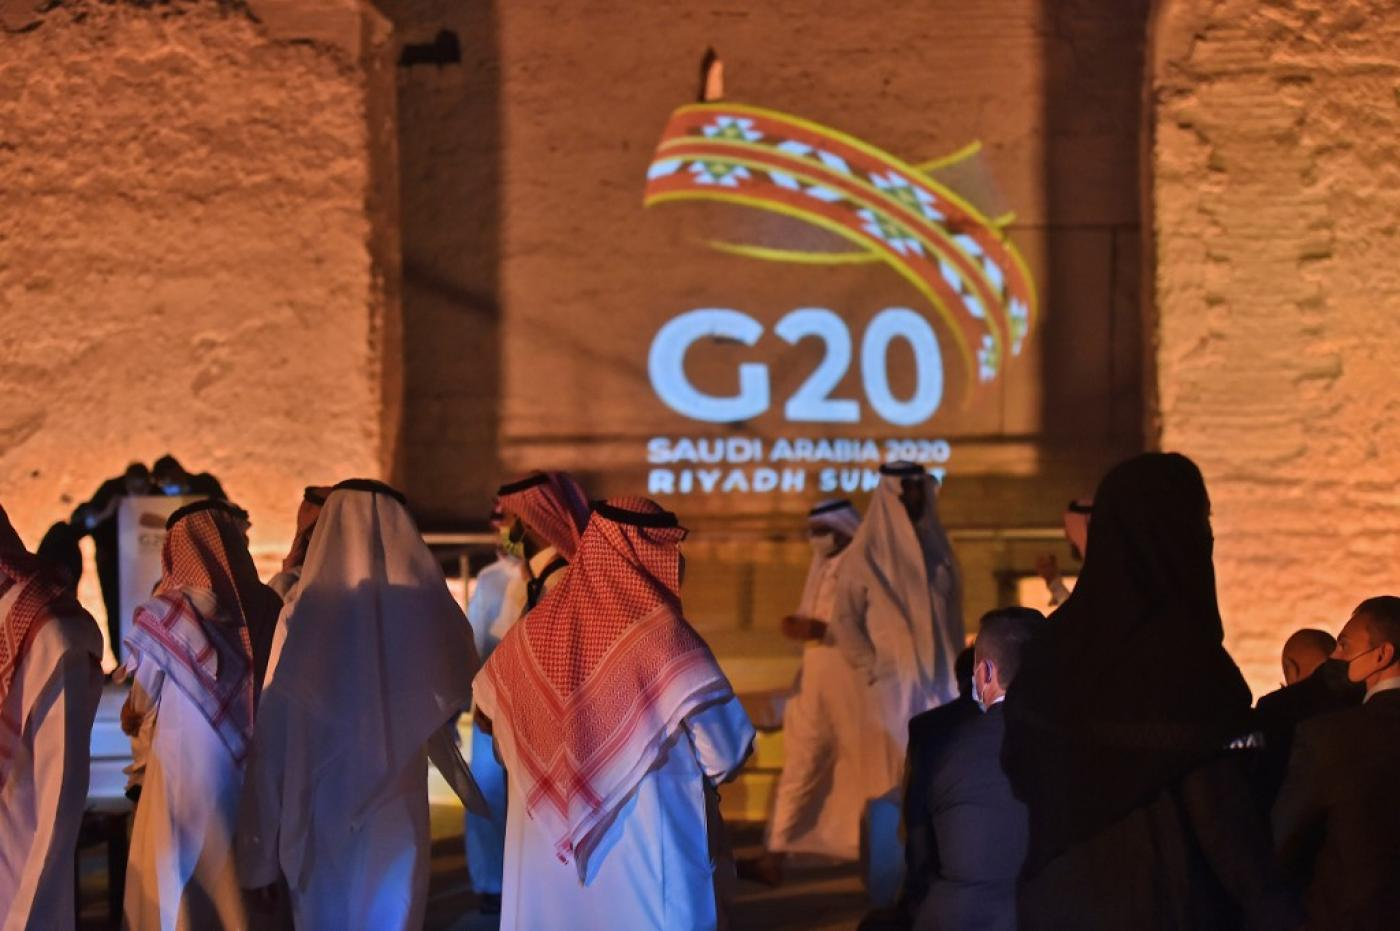 The G20 logo is projected at the historical site of al-Tarif in Diriyah district